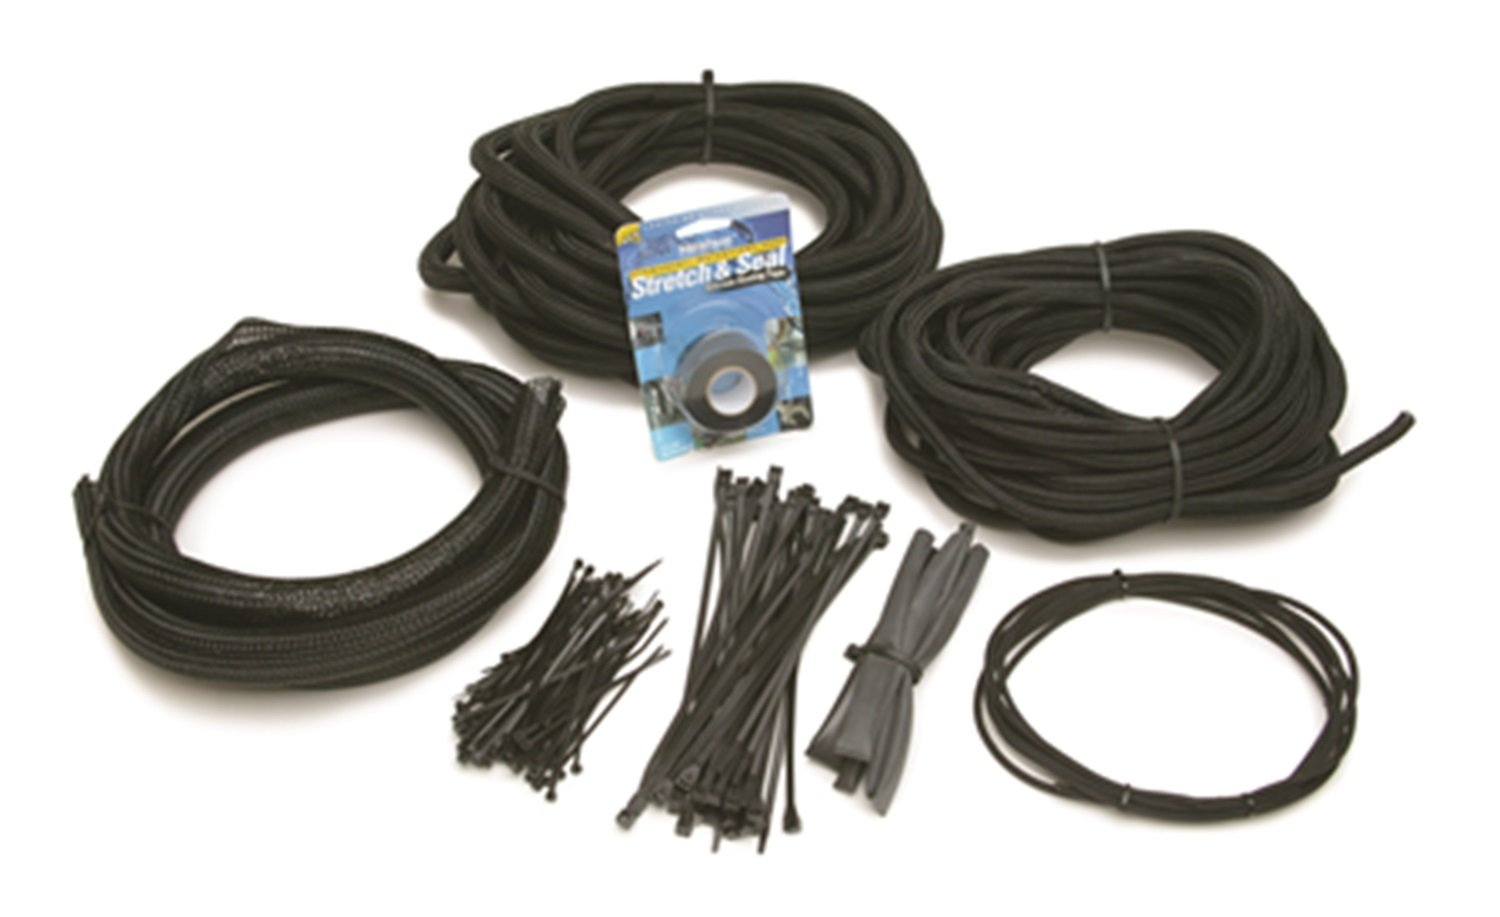 61KfhP ZlhL._SL1500_ amazon com painless wiring 70920 power braid chassis kit automotive painless wiring harness rebate at n-0.co